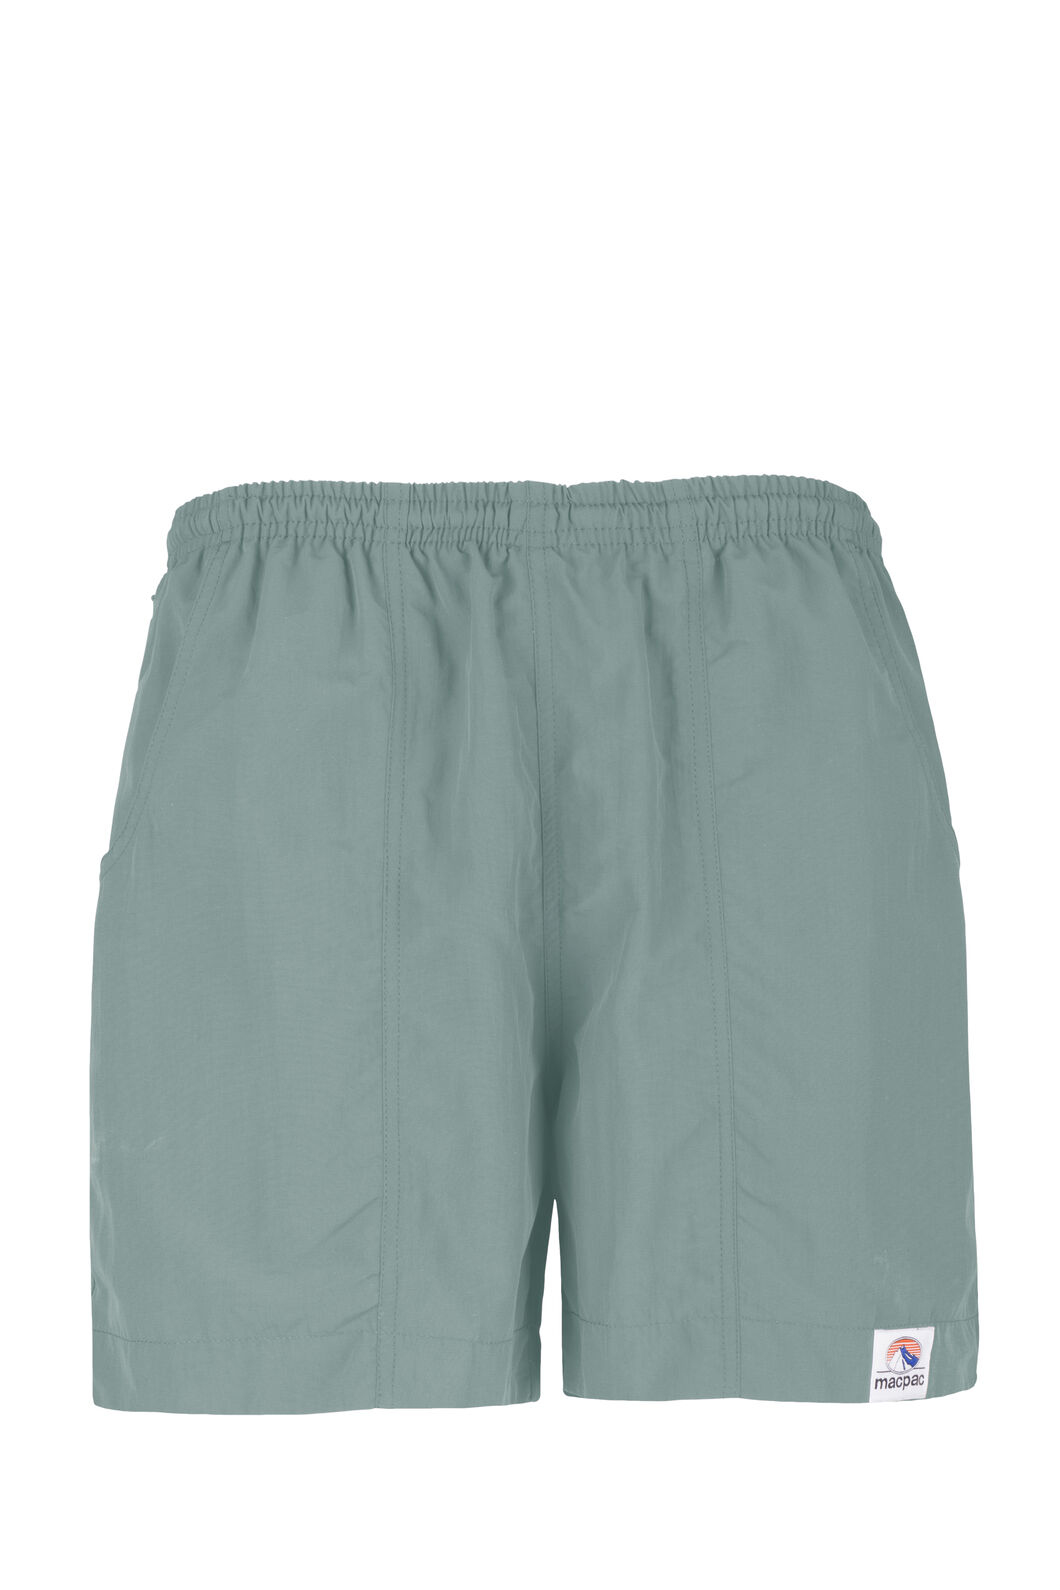 Macpac Winger Shorts — Men's, Stormy Sea, hi-res